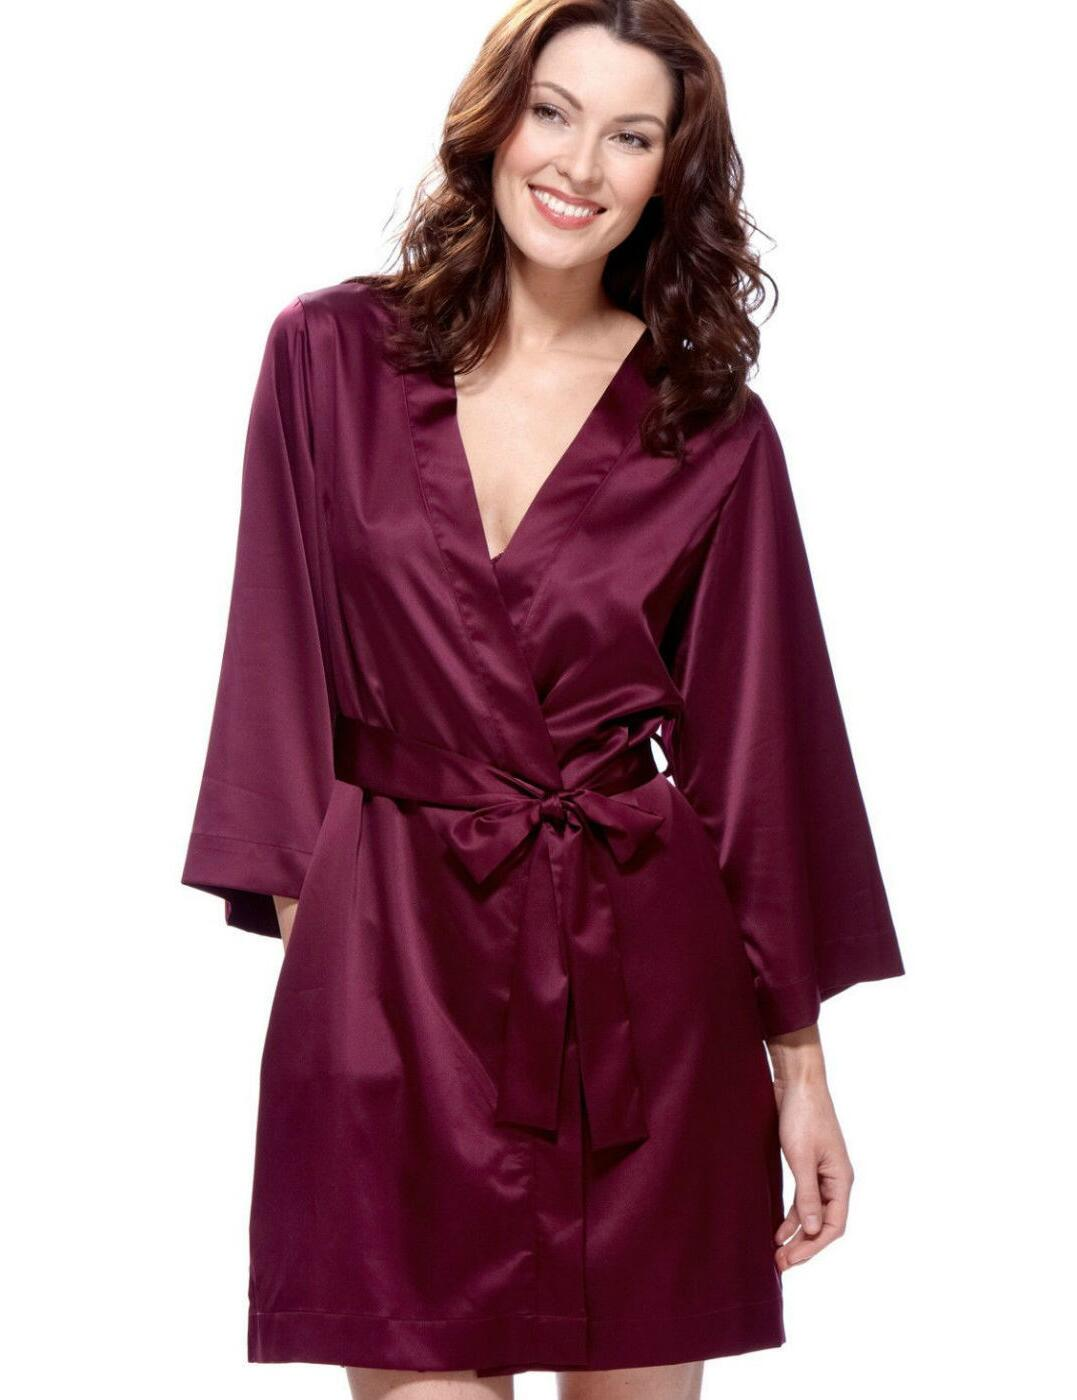 1185530 Lepel Georgina Wrap Dressing Gown Berry - 1185530 Wrap